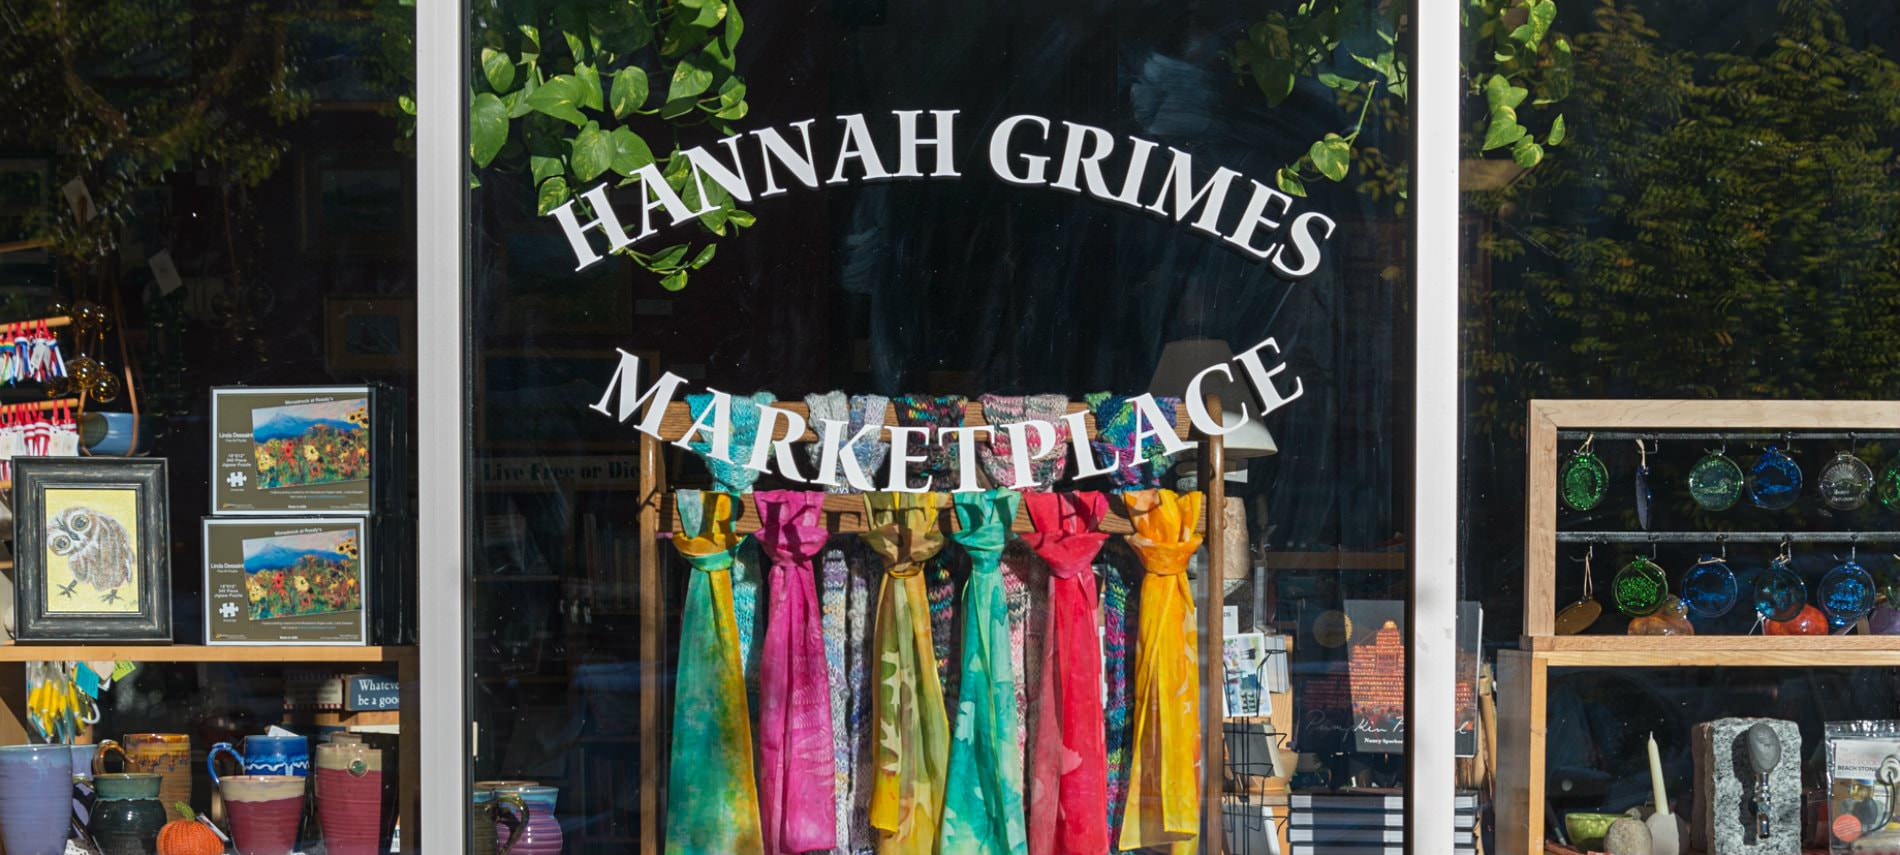 Hannah Grimes Marketplace window front with scarves, mugs, and items for sale